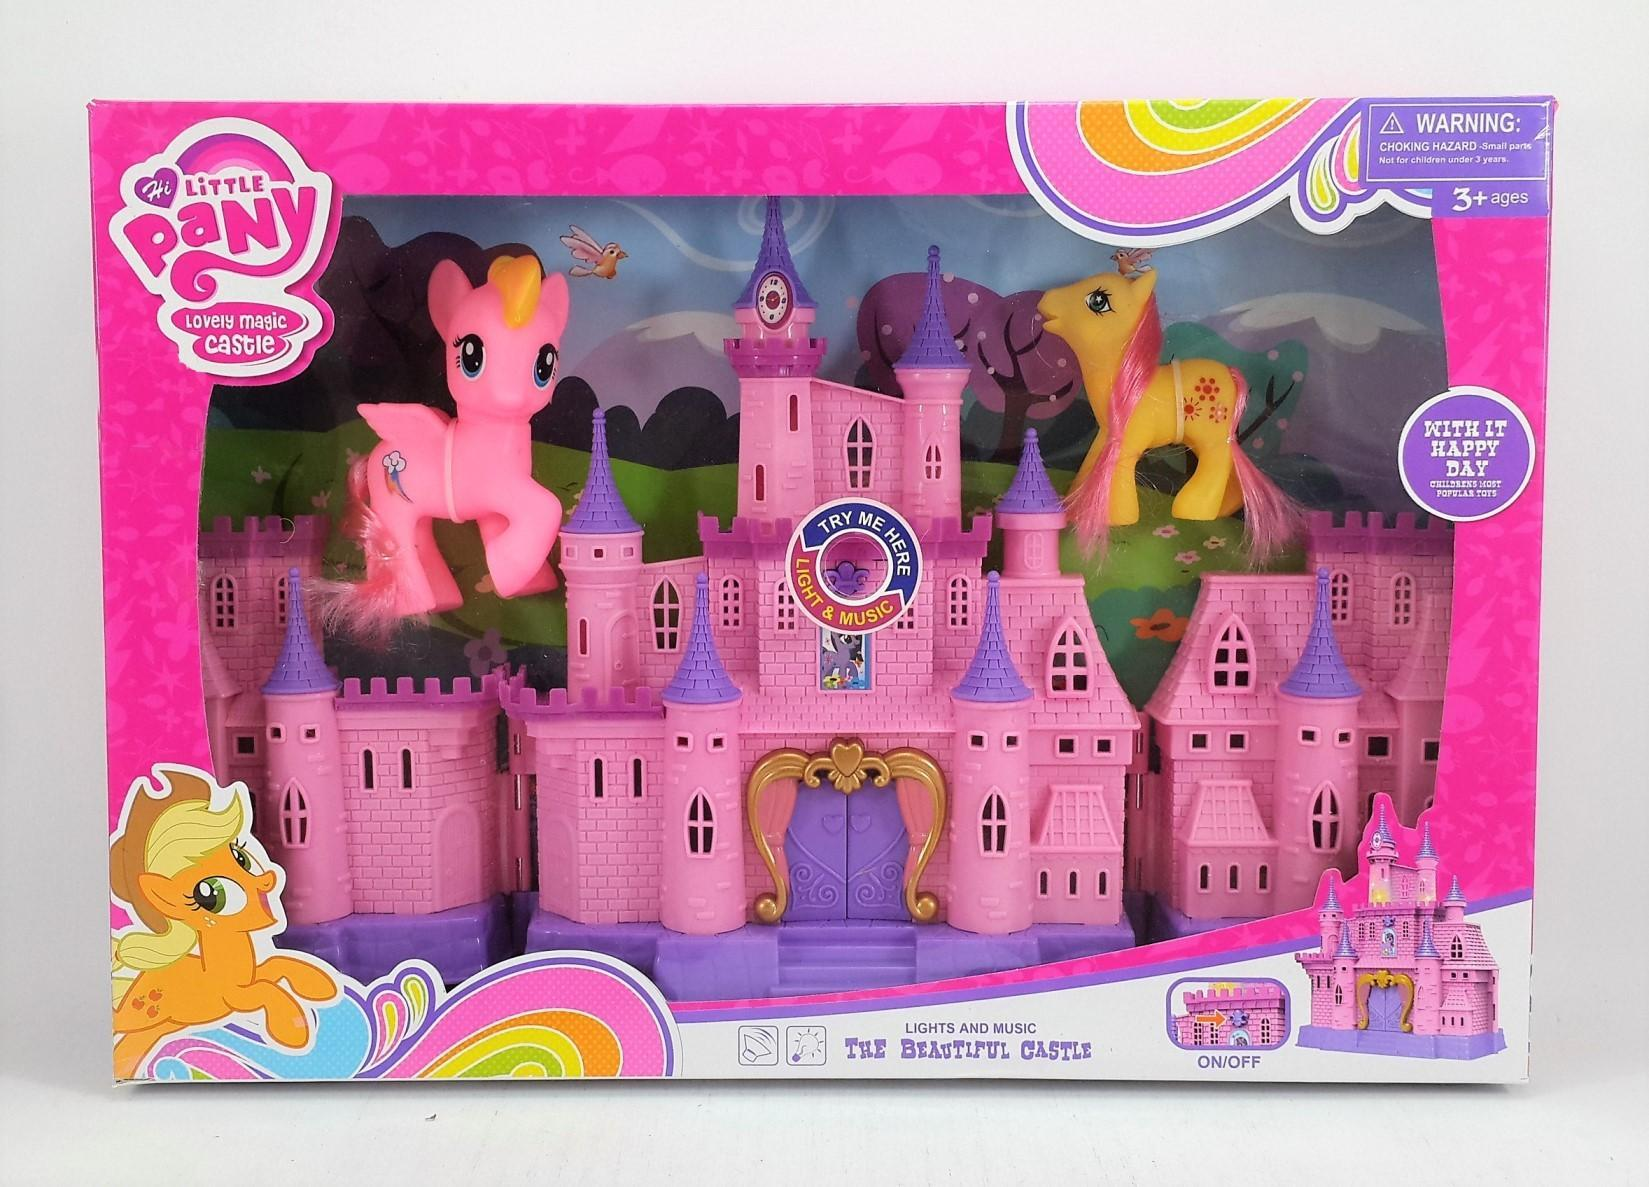 Mesh Mainan Anak Perempuan My Little PONY LOVELY MAGIC CASTLE - Mainan rumah Istana My Little Pany - 1 pak